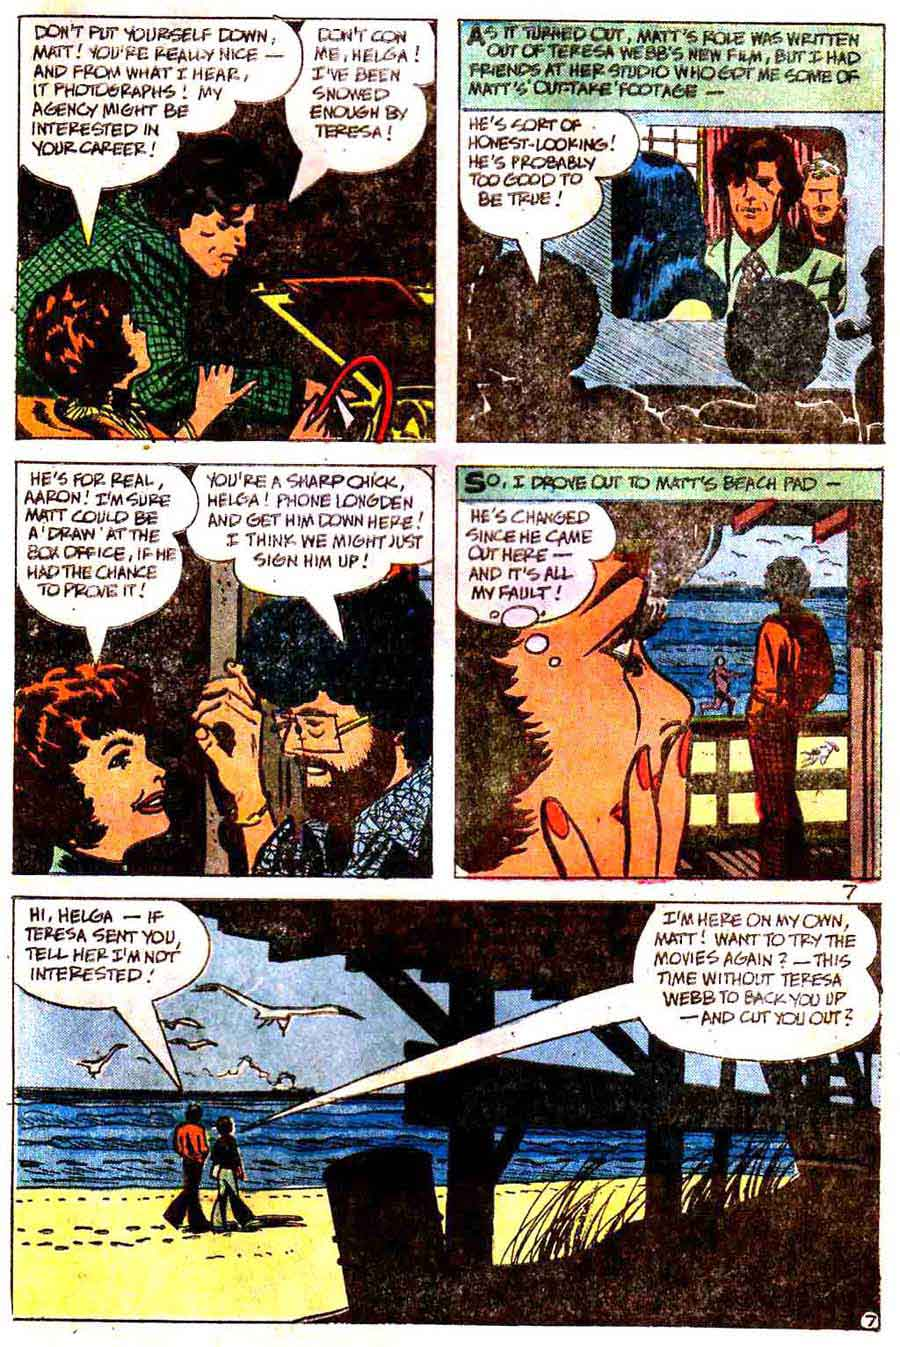 My Only Love v1 #3 chalrton romance comic book page art by Alex Toth